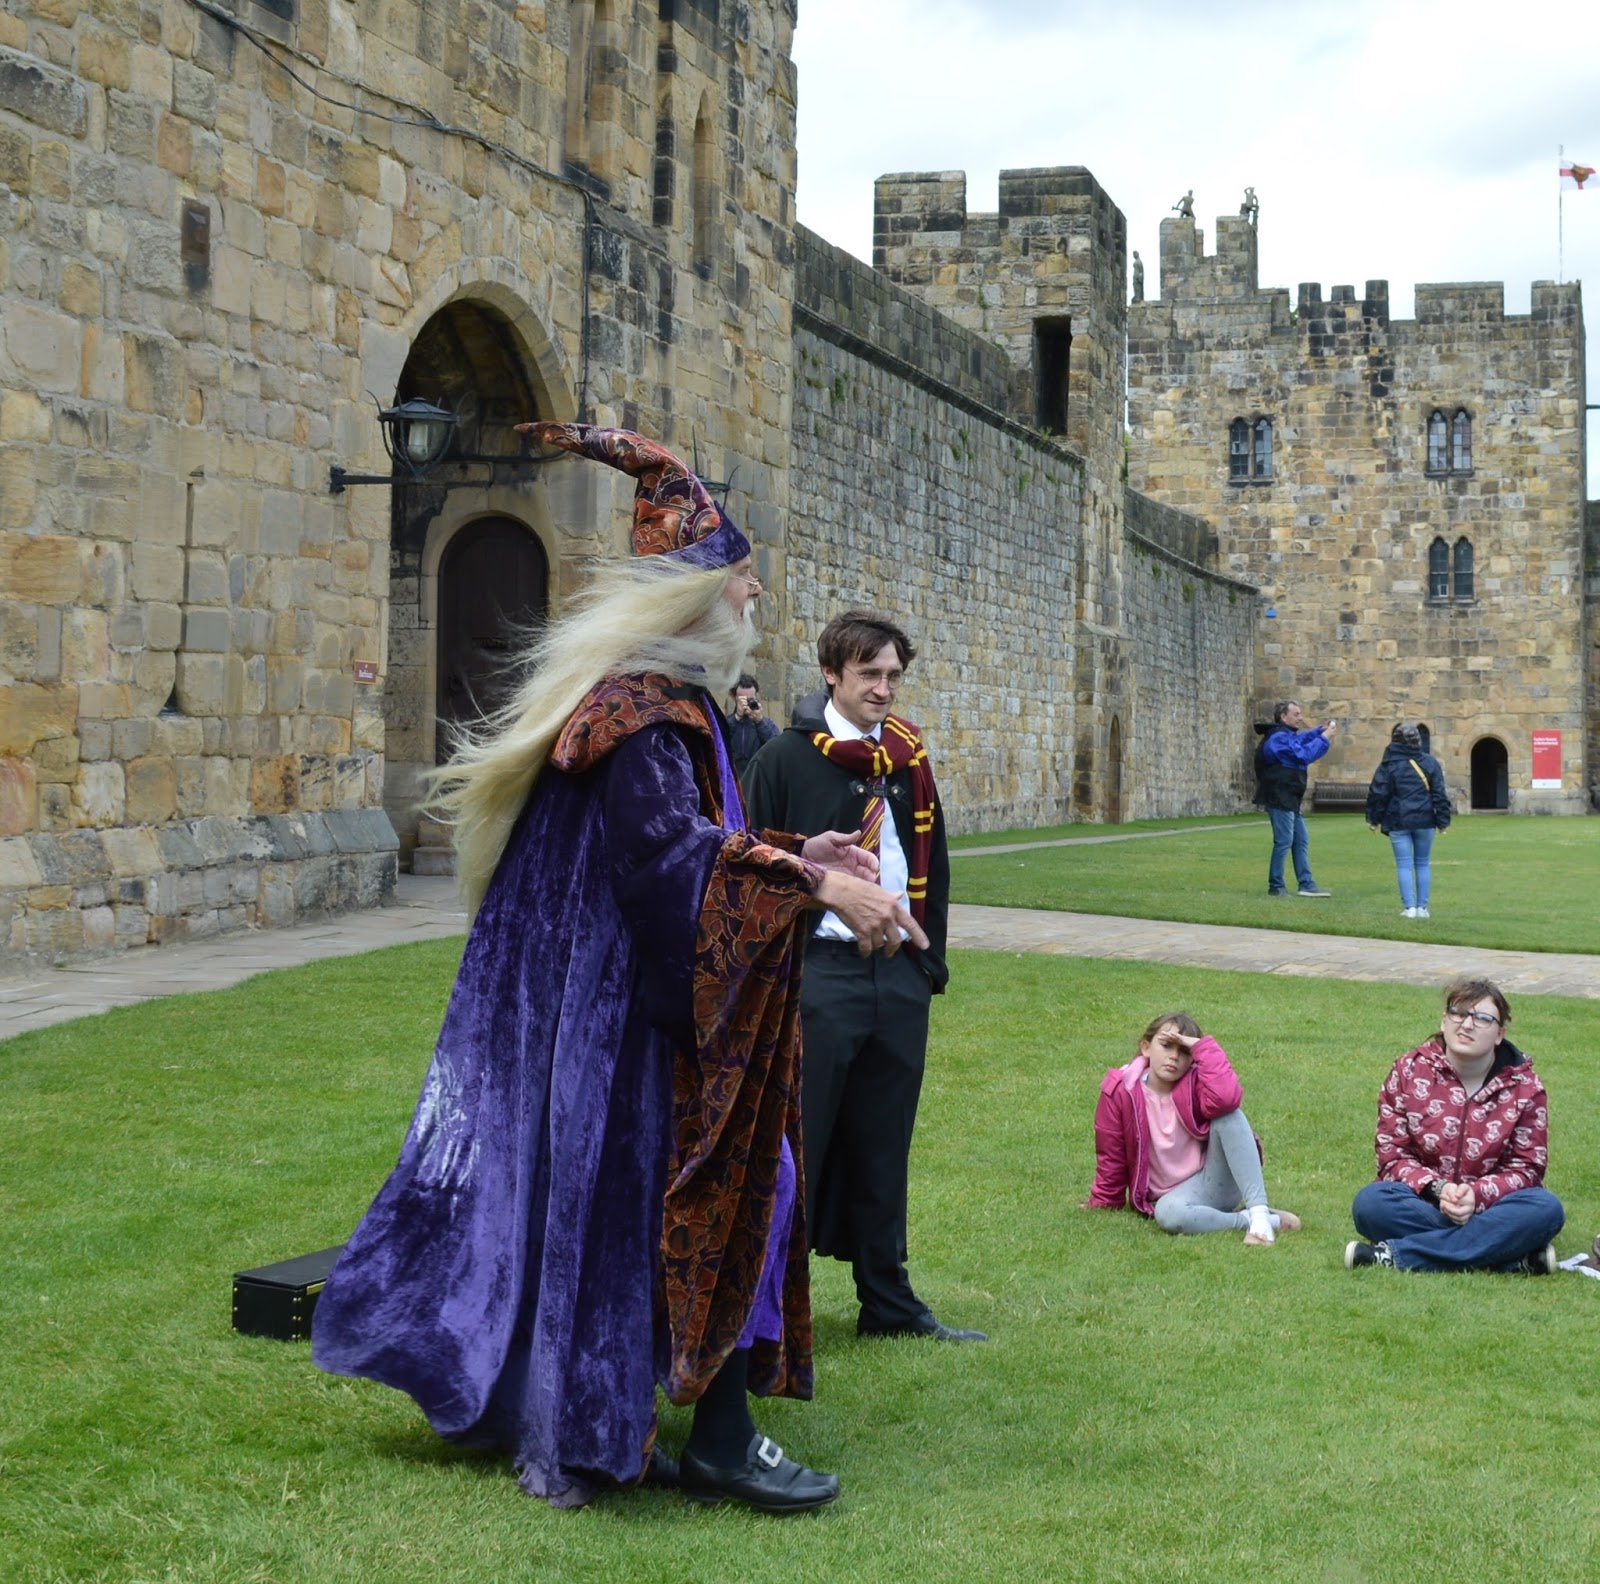 Harry Potter House Alnwick Castle Harry Potter Broomstick Training North